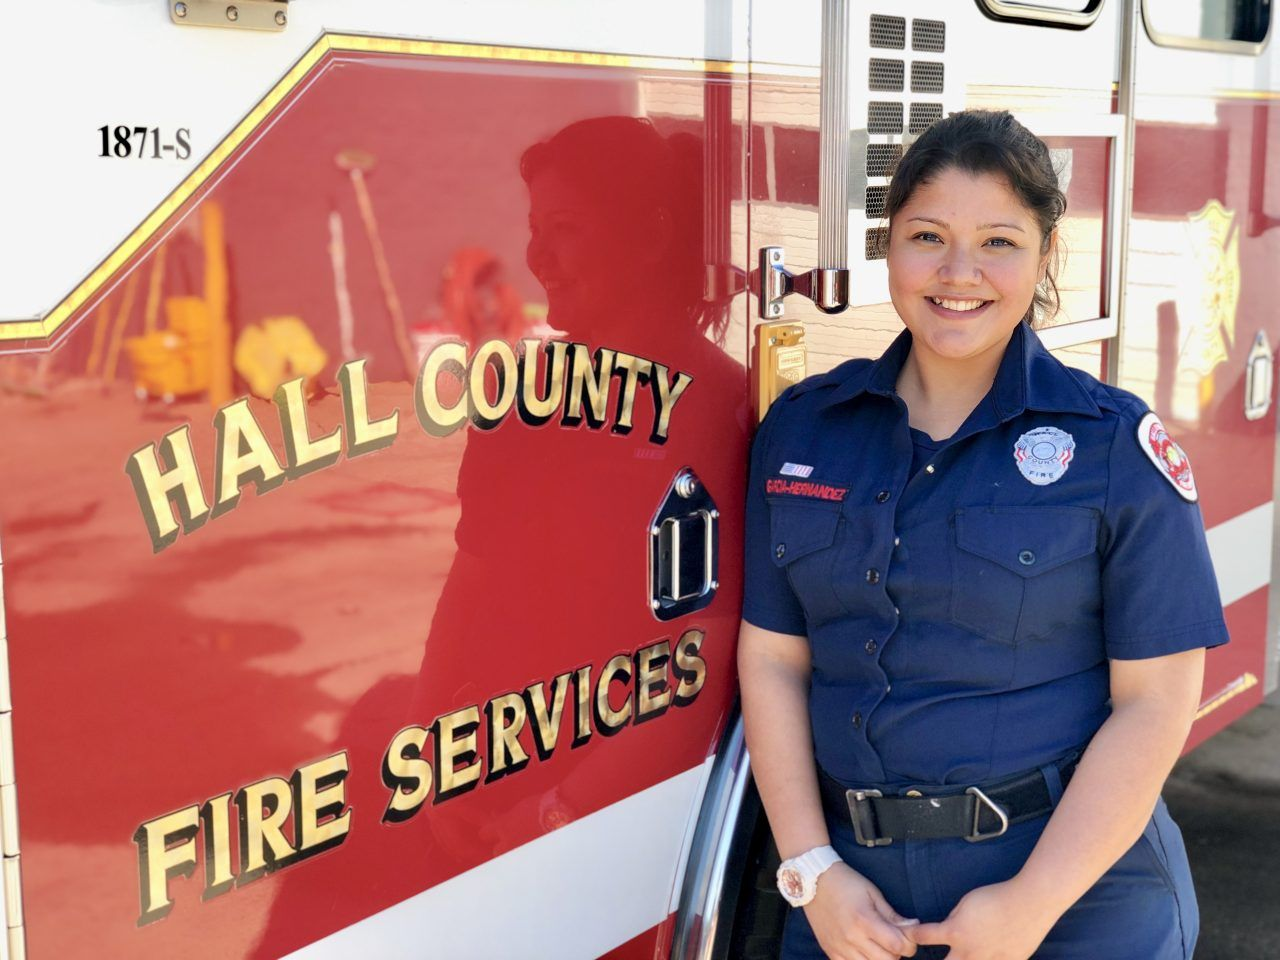 Faces of Hall County Noemi Garcia (With images) How to